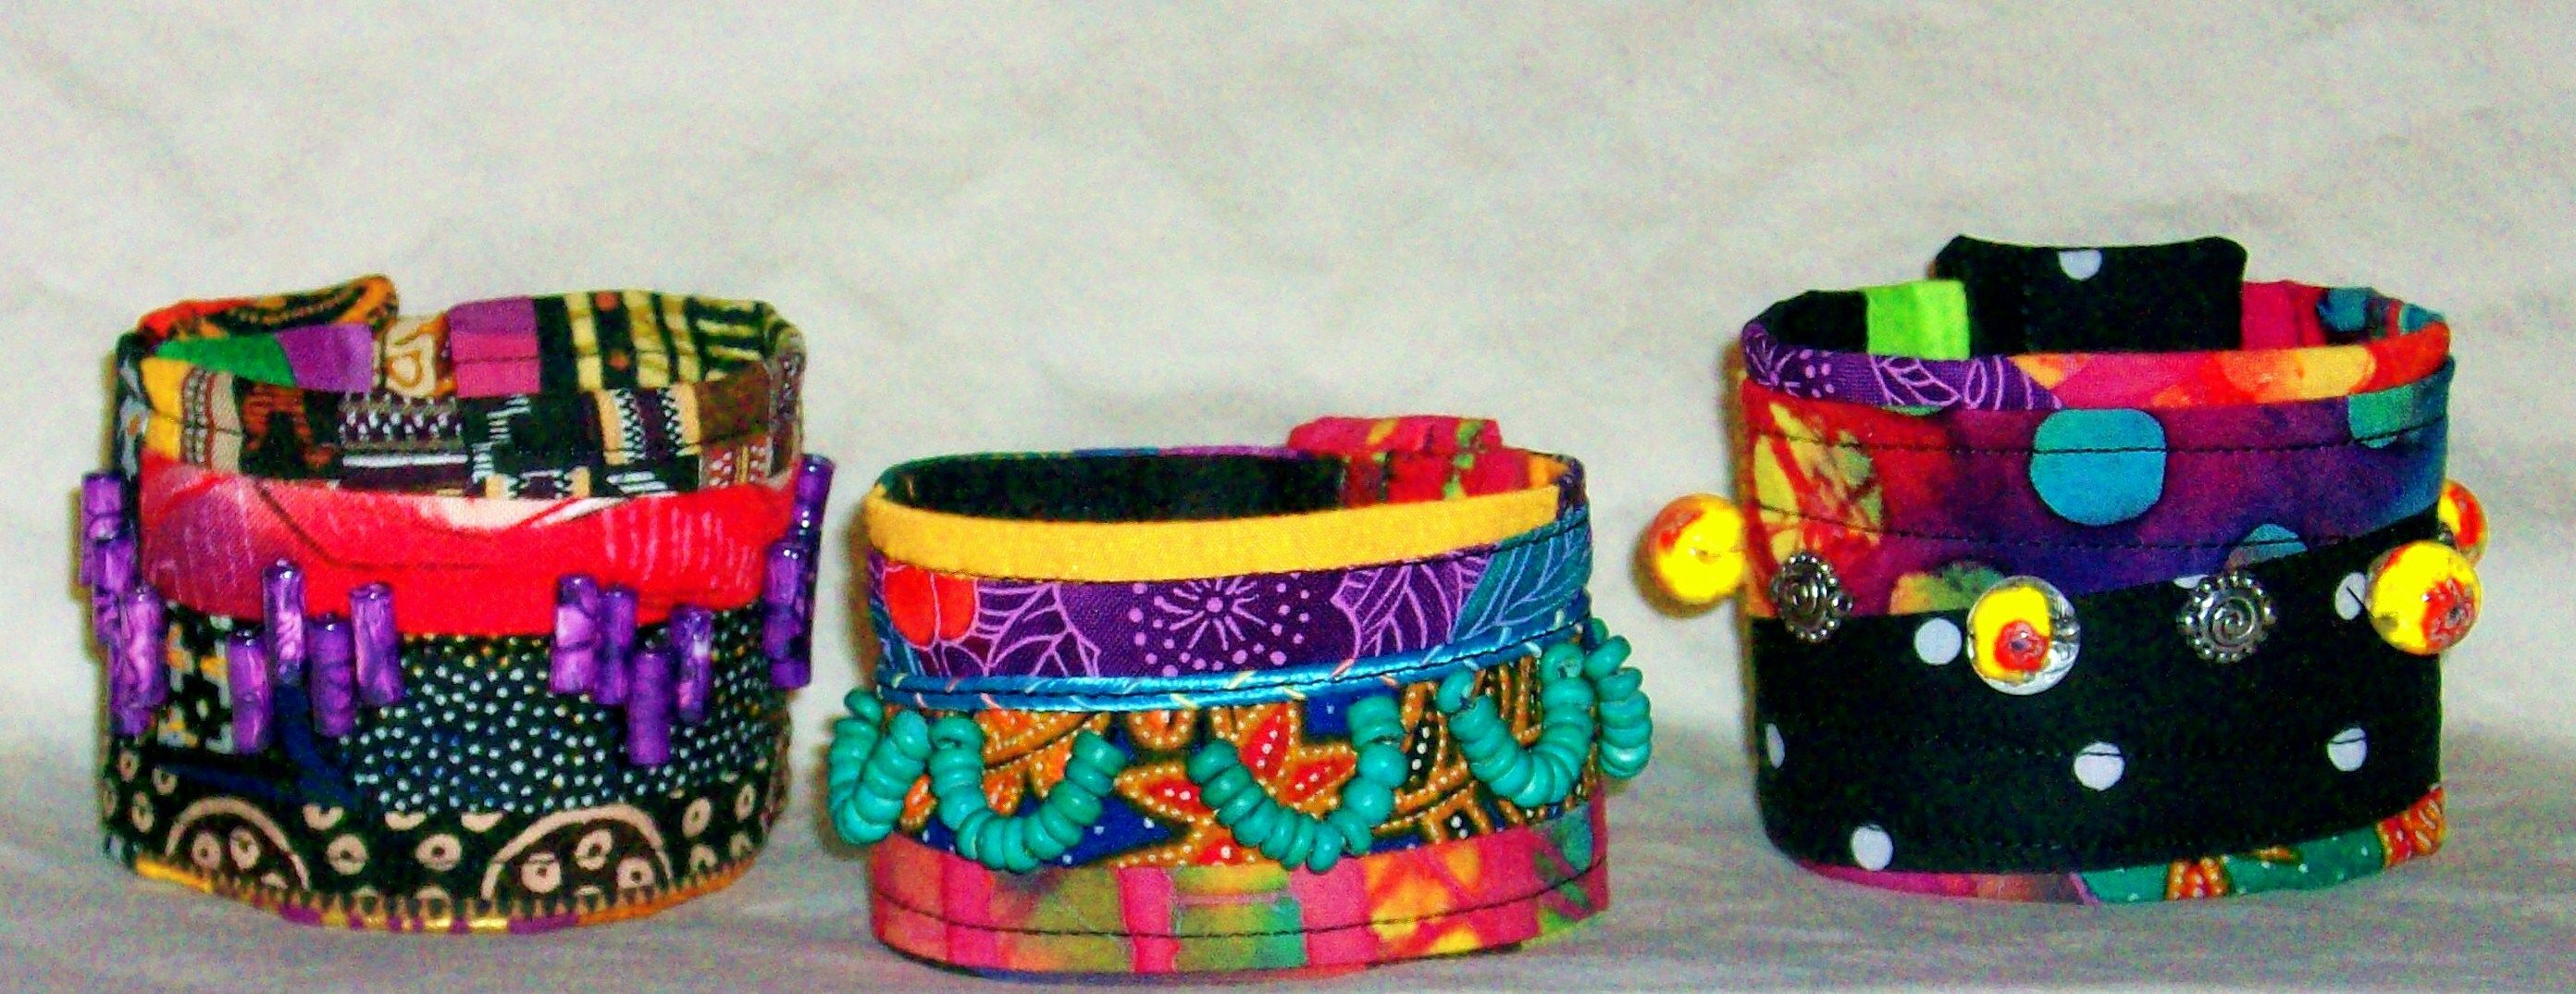 Fanciful cuffs. These would be fun!